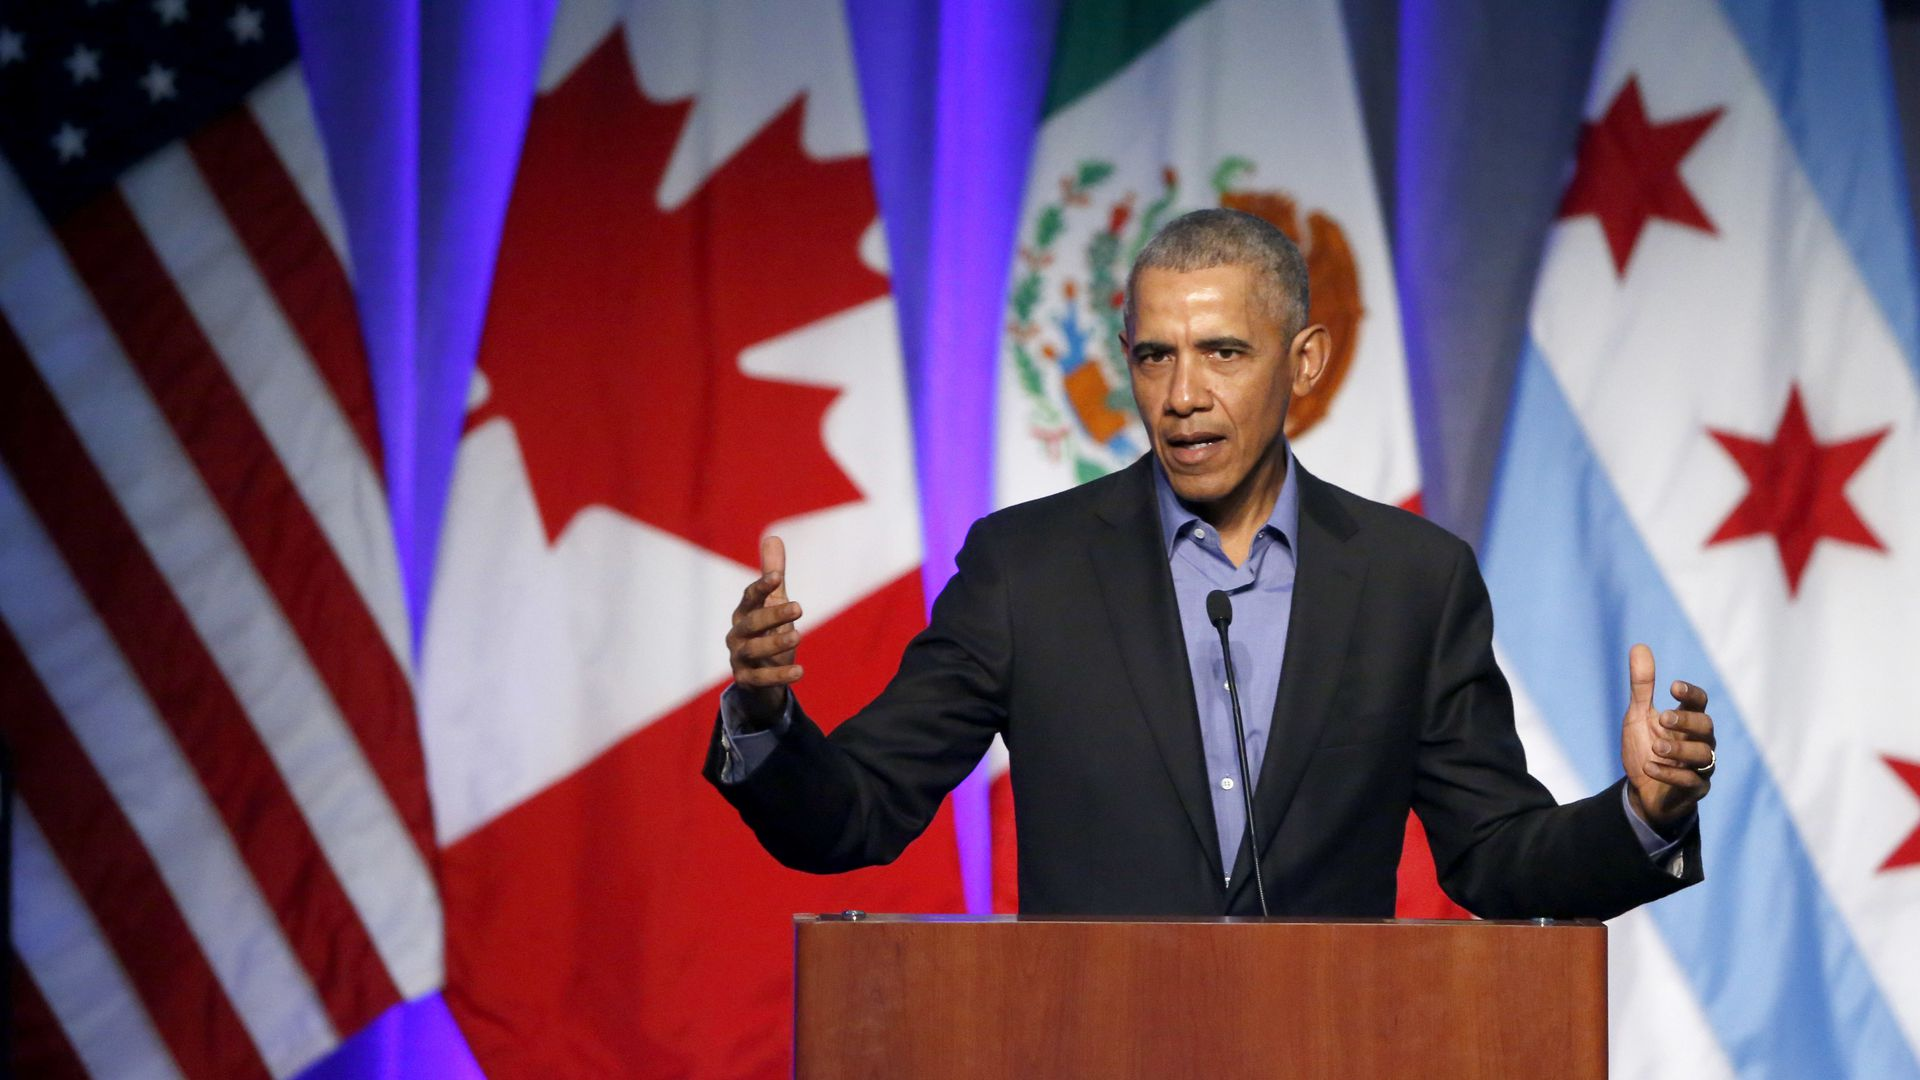 Former U.S. President Barack Obama address the participants at a summit on climate change.